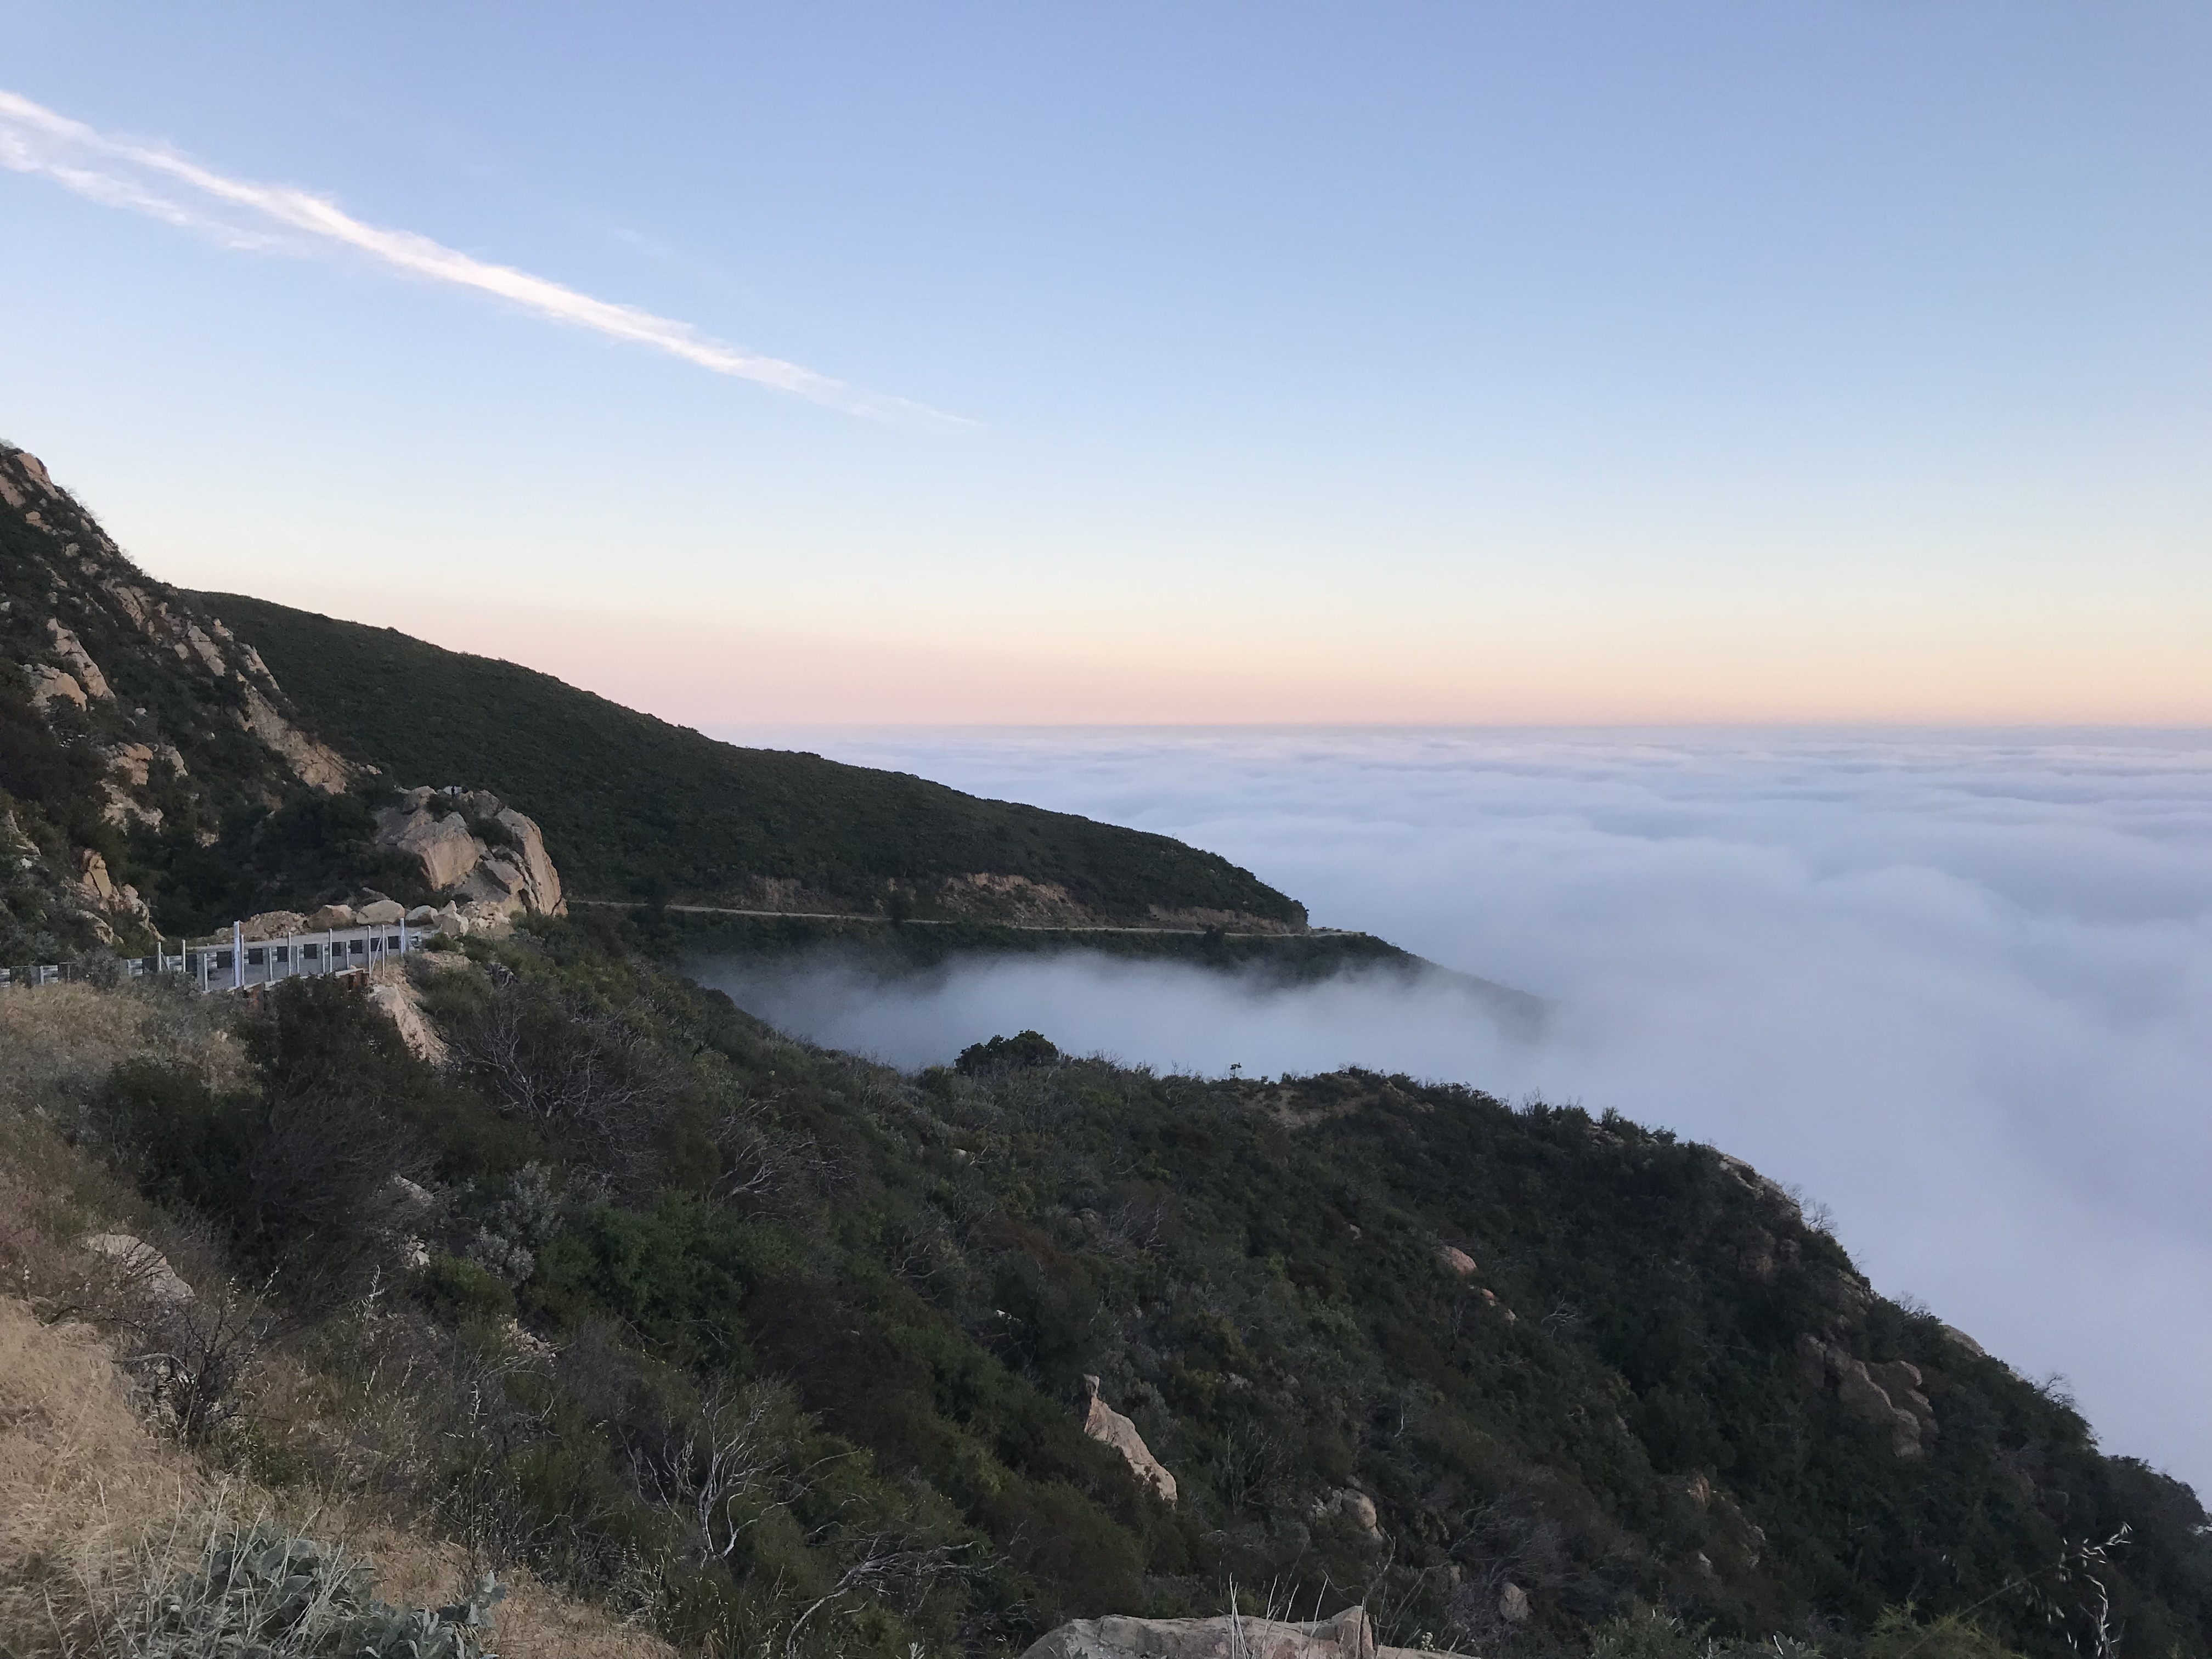 The view from the side of the road near the top of a mountain. The view is above the clouds, which creep into the mountainside. The sky is slightly orange from the sunset.